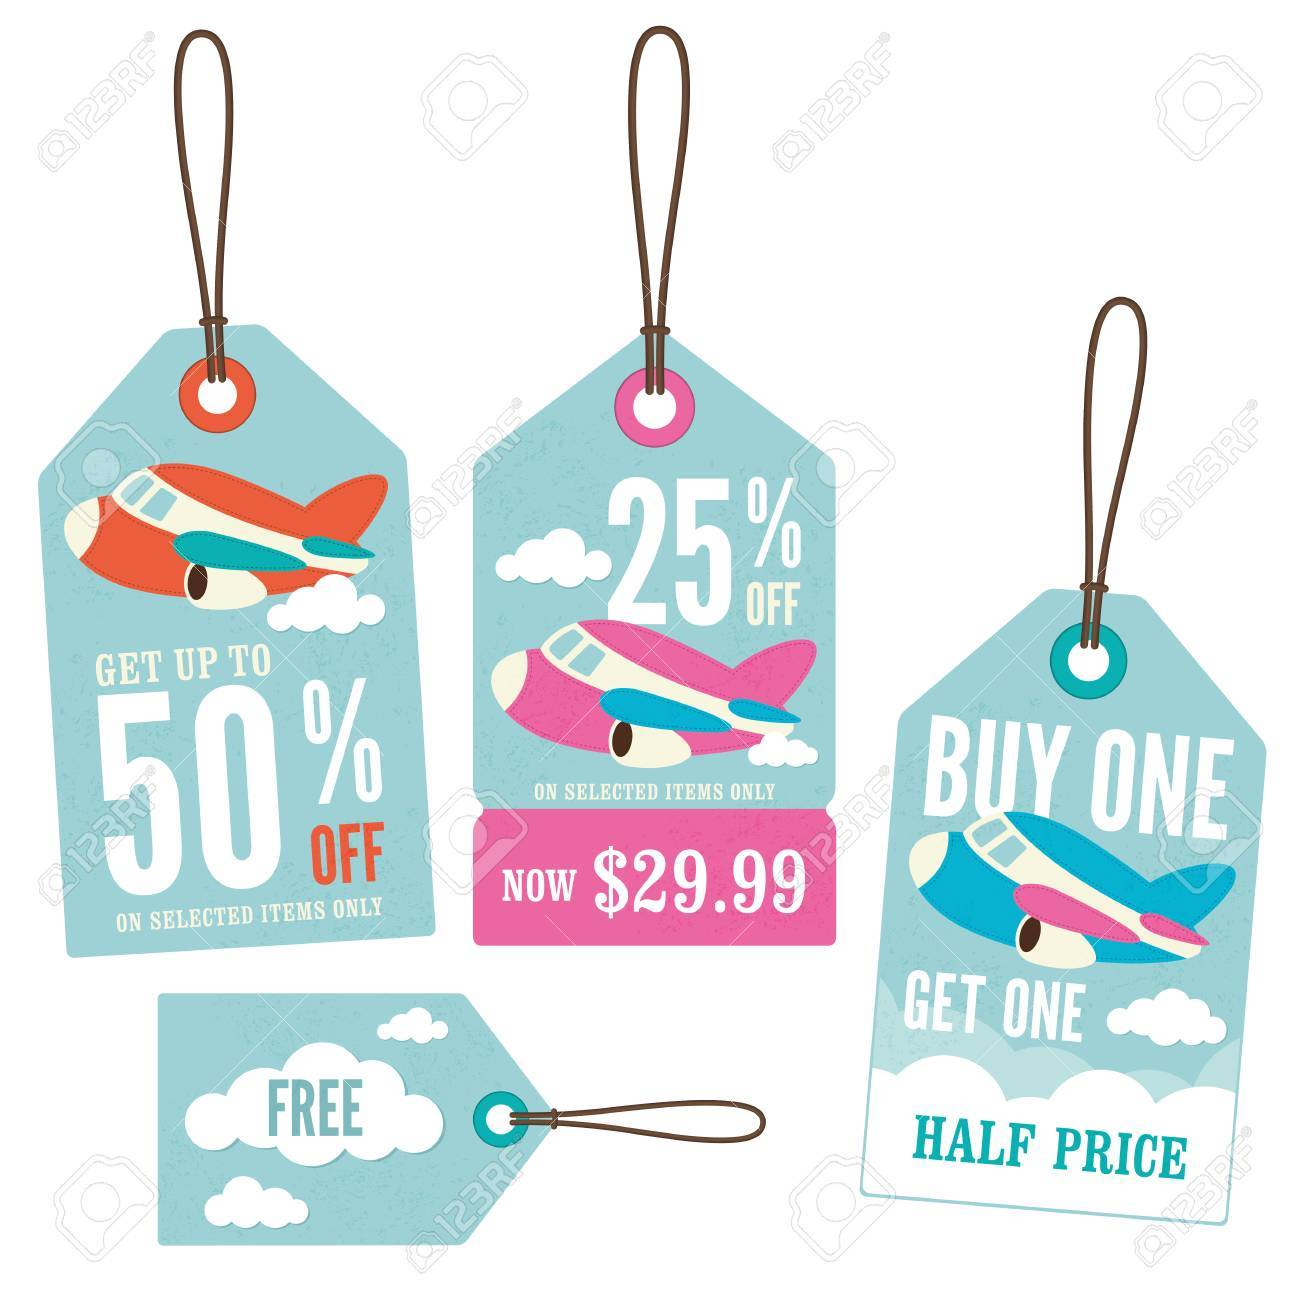 a1e4ebc43faf2 A Set Of Retail Price Tags With A Plane Theme Royalty Free Cliparts ...